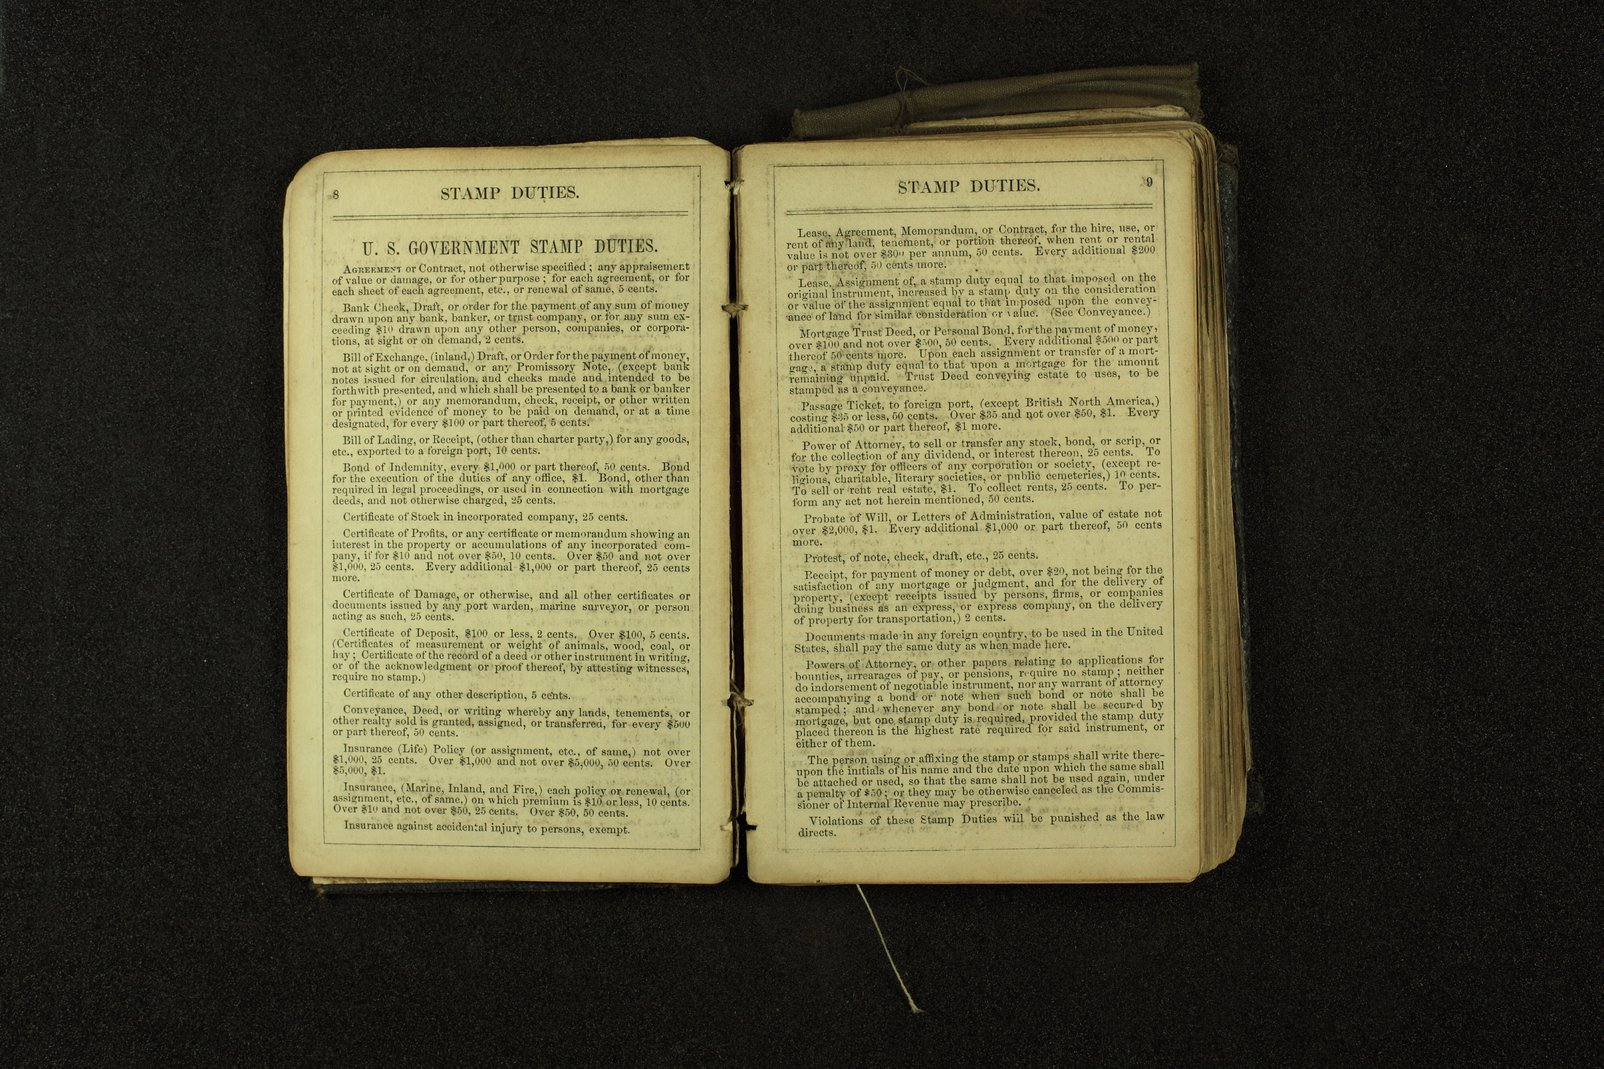 Clergyman's pocket diary and visiting book belonging to Boston Corbett - 8 & 9